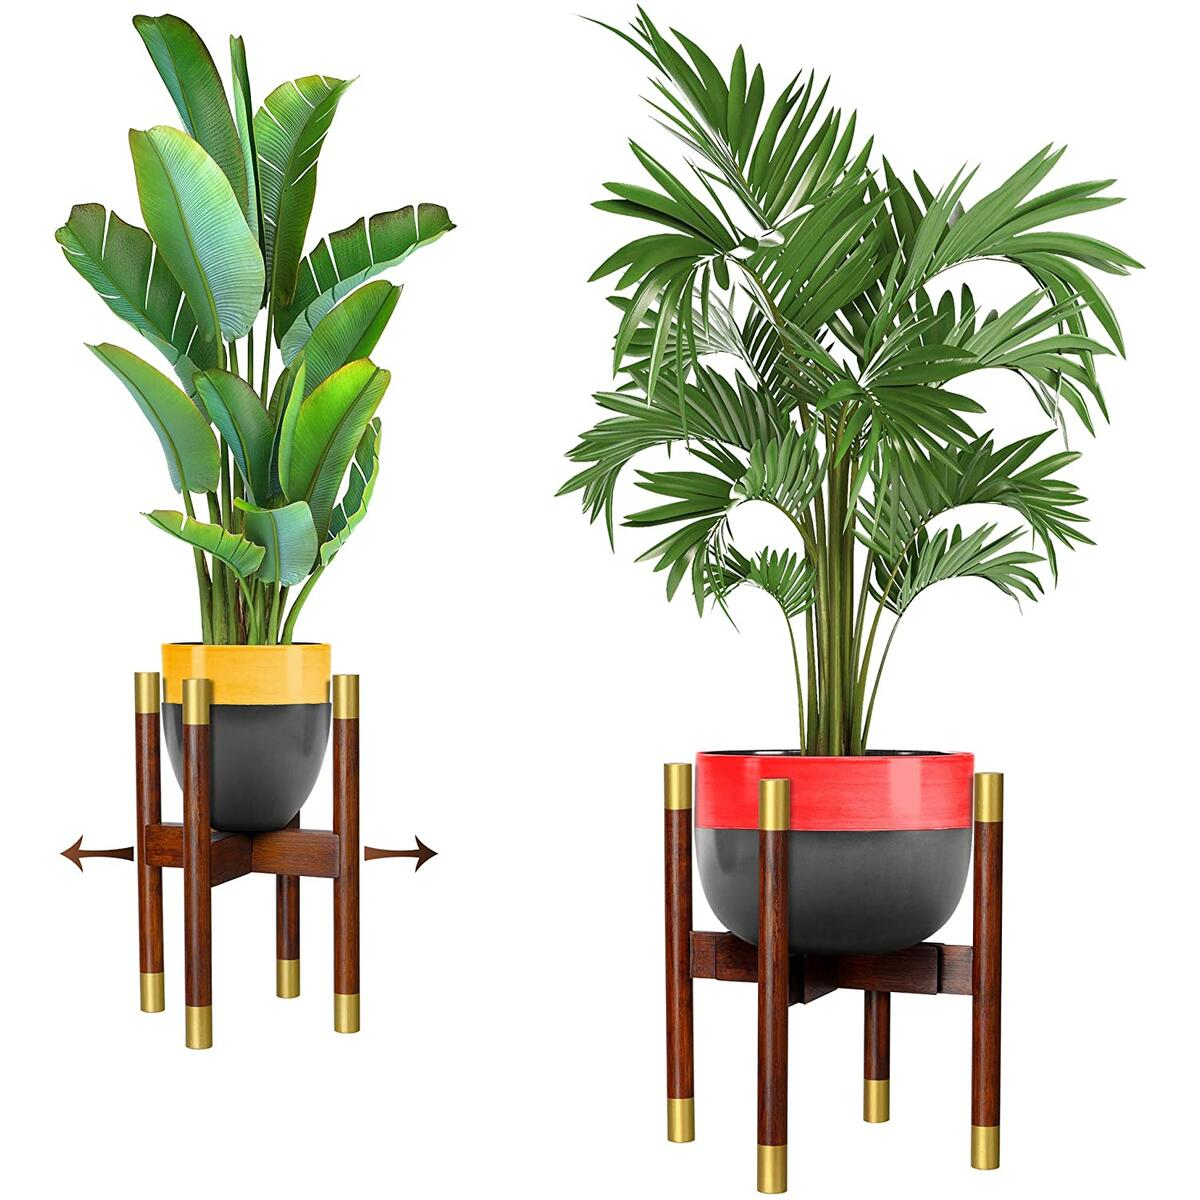 Mid Century Adjustable Plant Stand – Bamboo Indoor Planter Stand Extendable Size 8 to 12 Inches – Hand-Made Original Dark Brown and Gold Metal Plant Stand Effect- Modern Decor for Home and Office